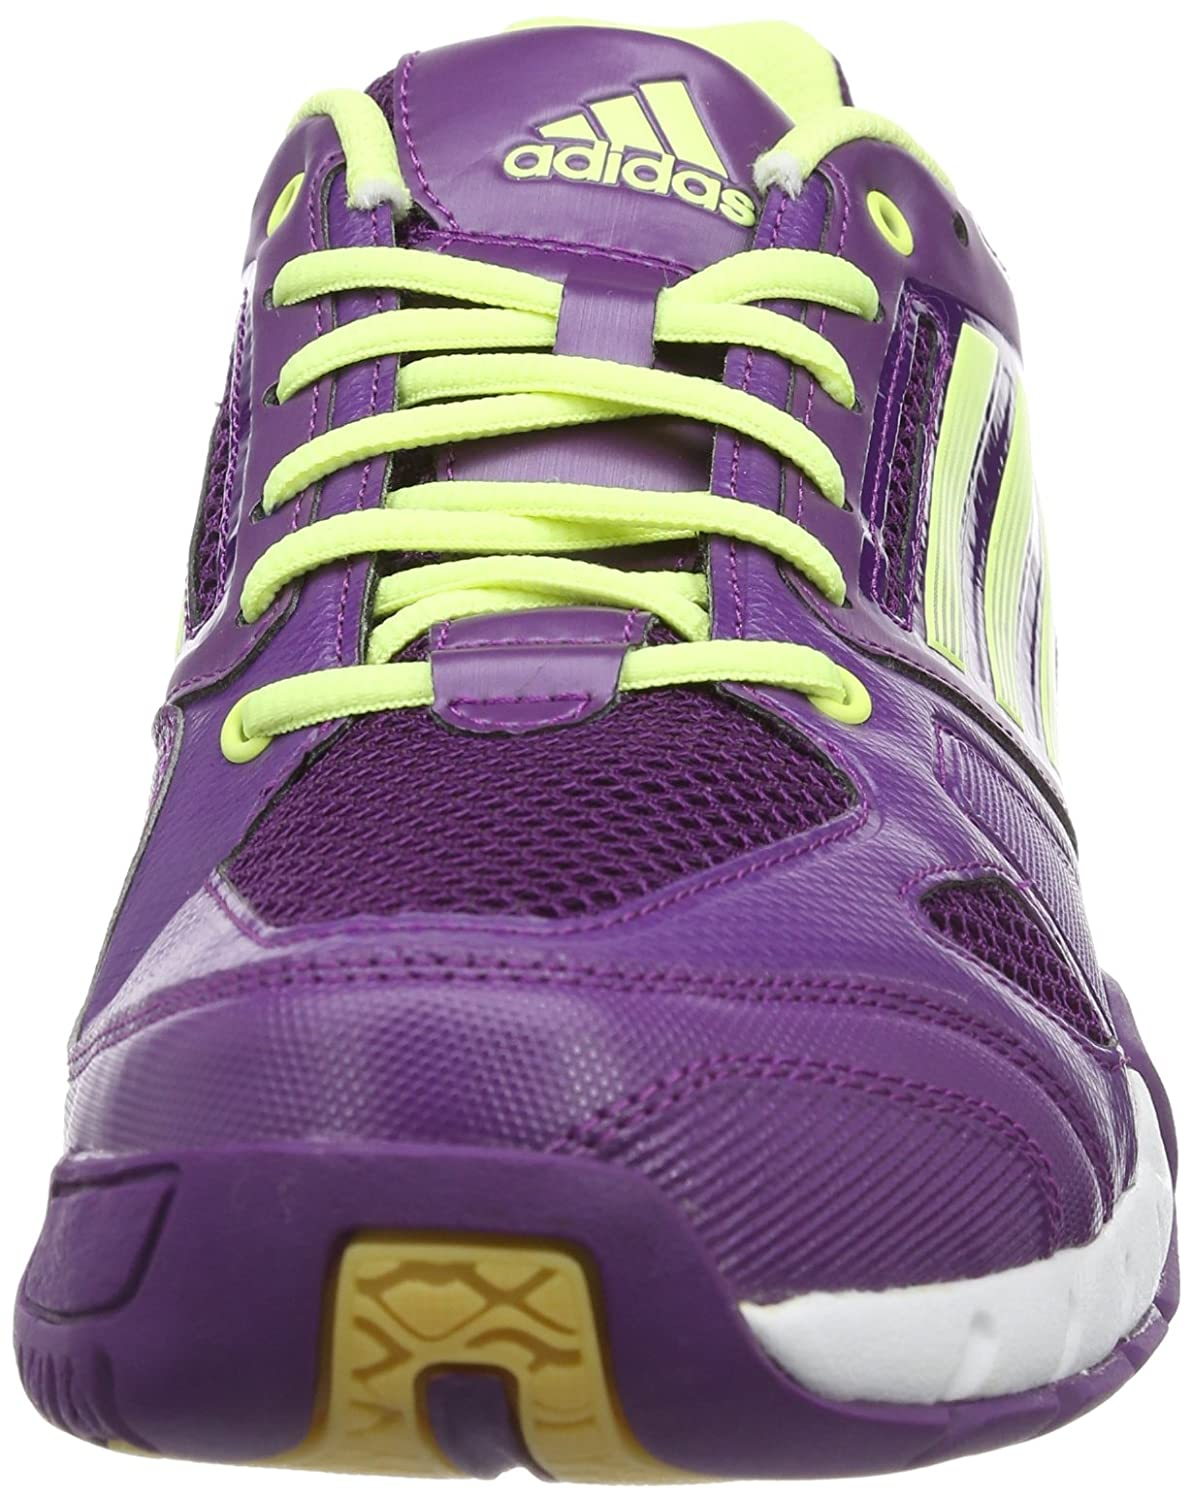 huge selection of 18161 50eb7 adidas Volley Team D66801 Damen Volleyballschuhe, Violett (tribe purple  s14running whiteglow s14), EU 38 23 (UK 5.5) Amazon.de Schuhe   Handtaschen